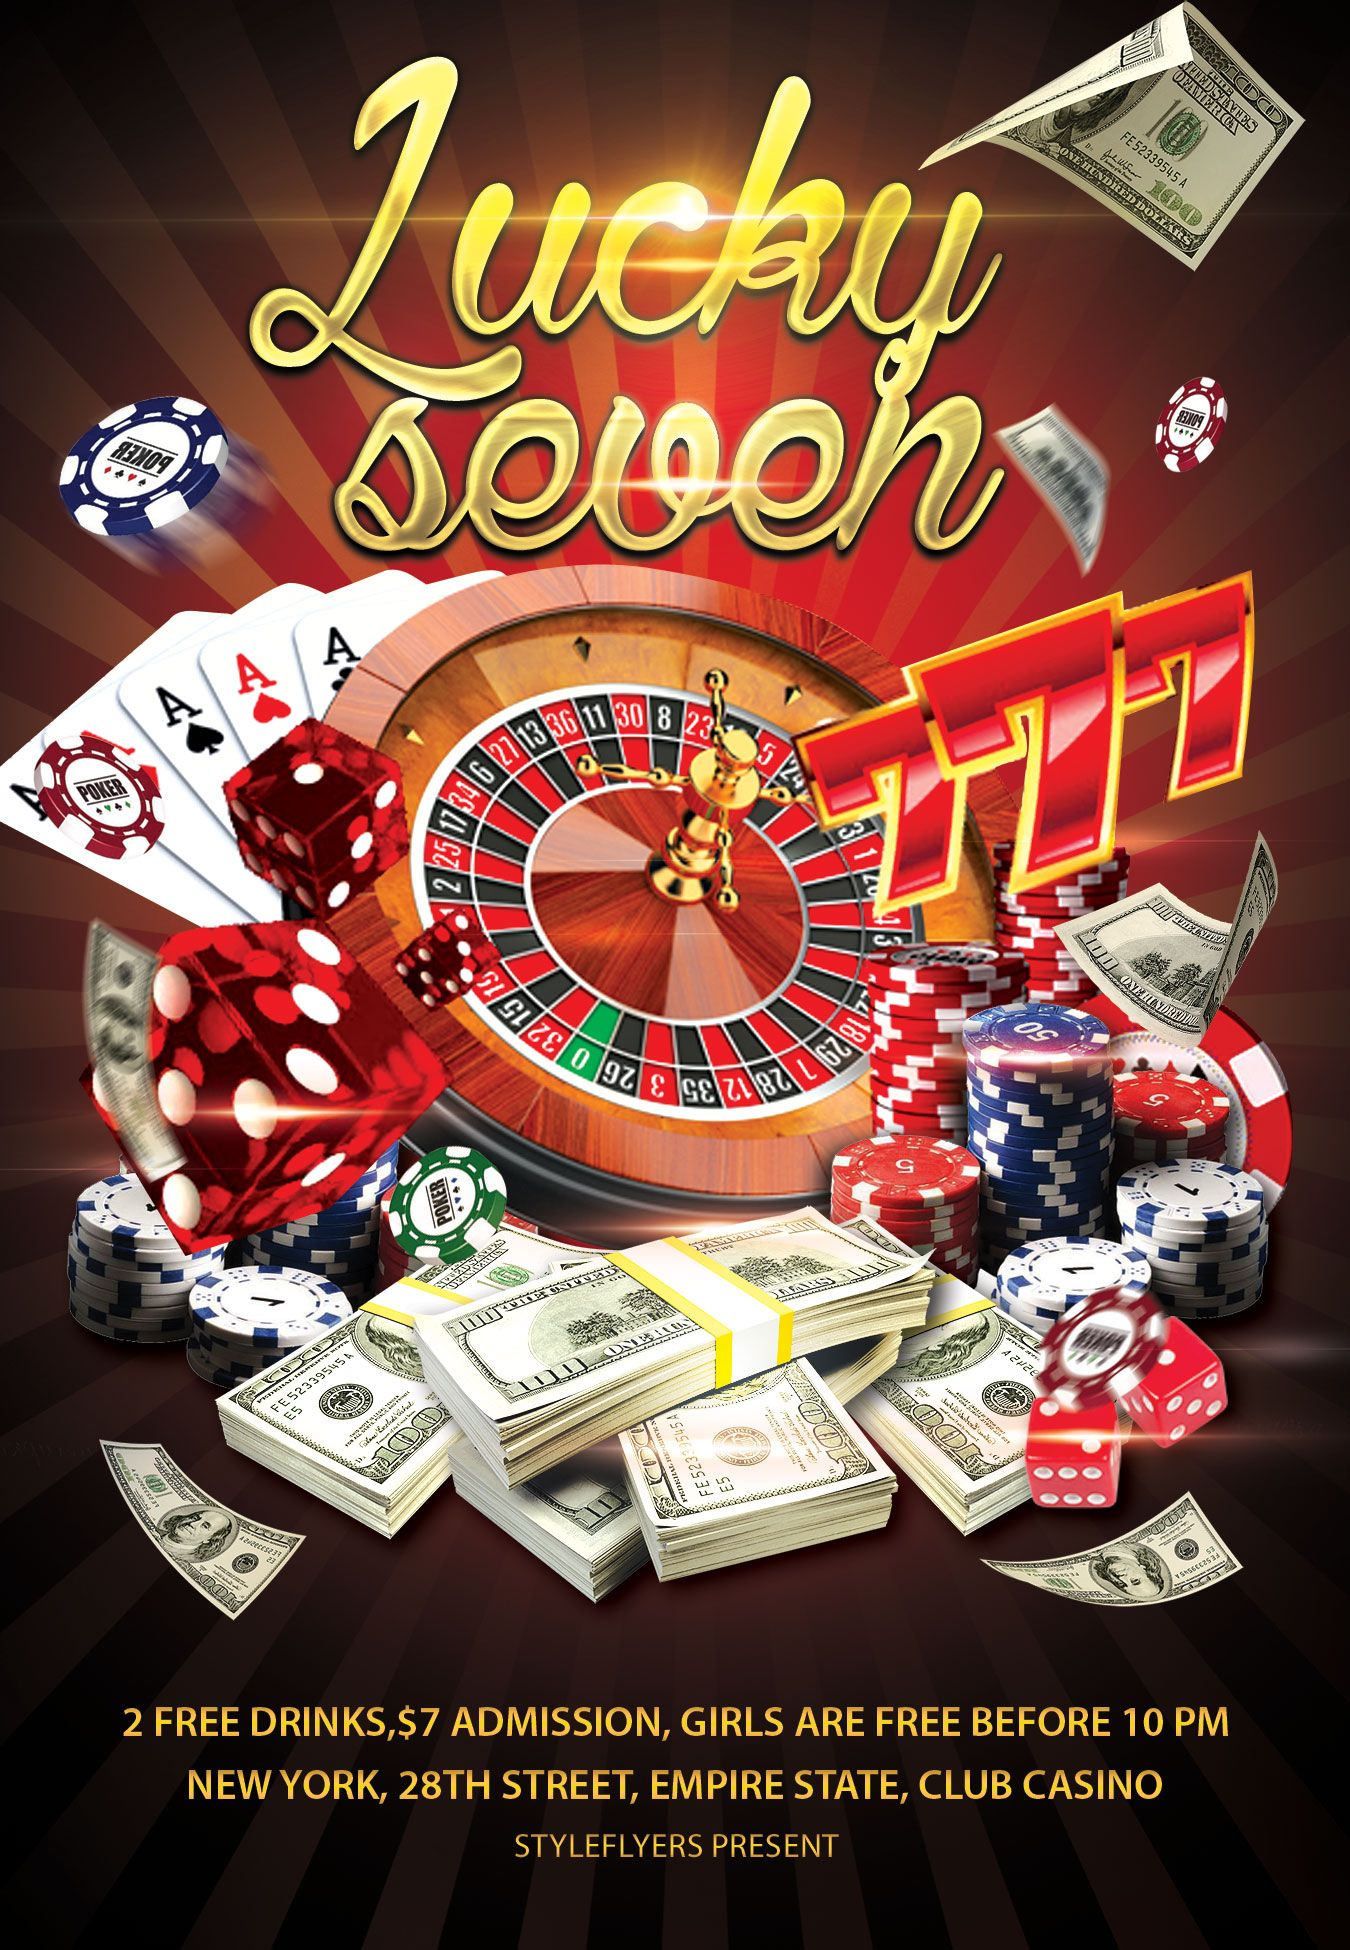 Check out our new flyer its a great promotion for casino lucky check out our new flyer its a great promotion for casino lucky pronofoot35fo Choice Image